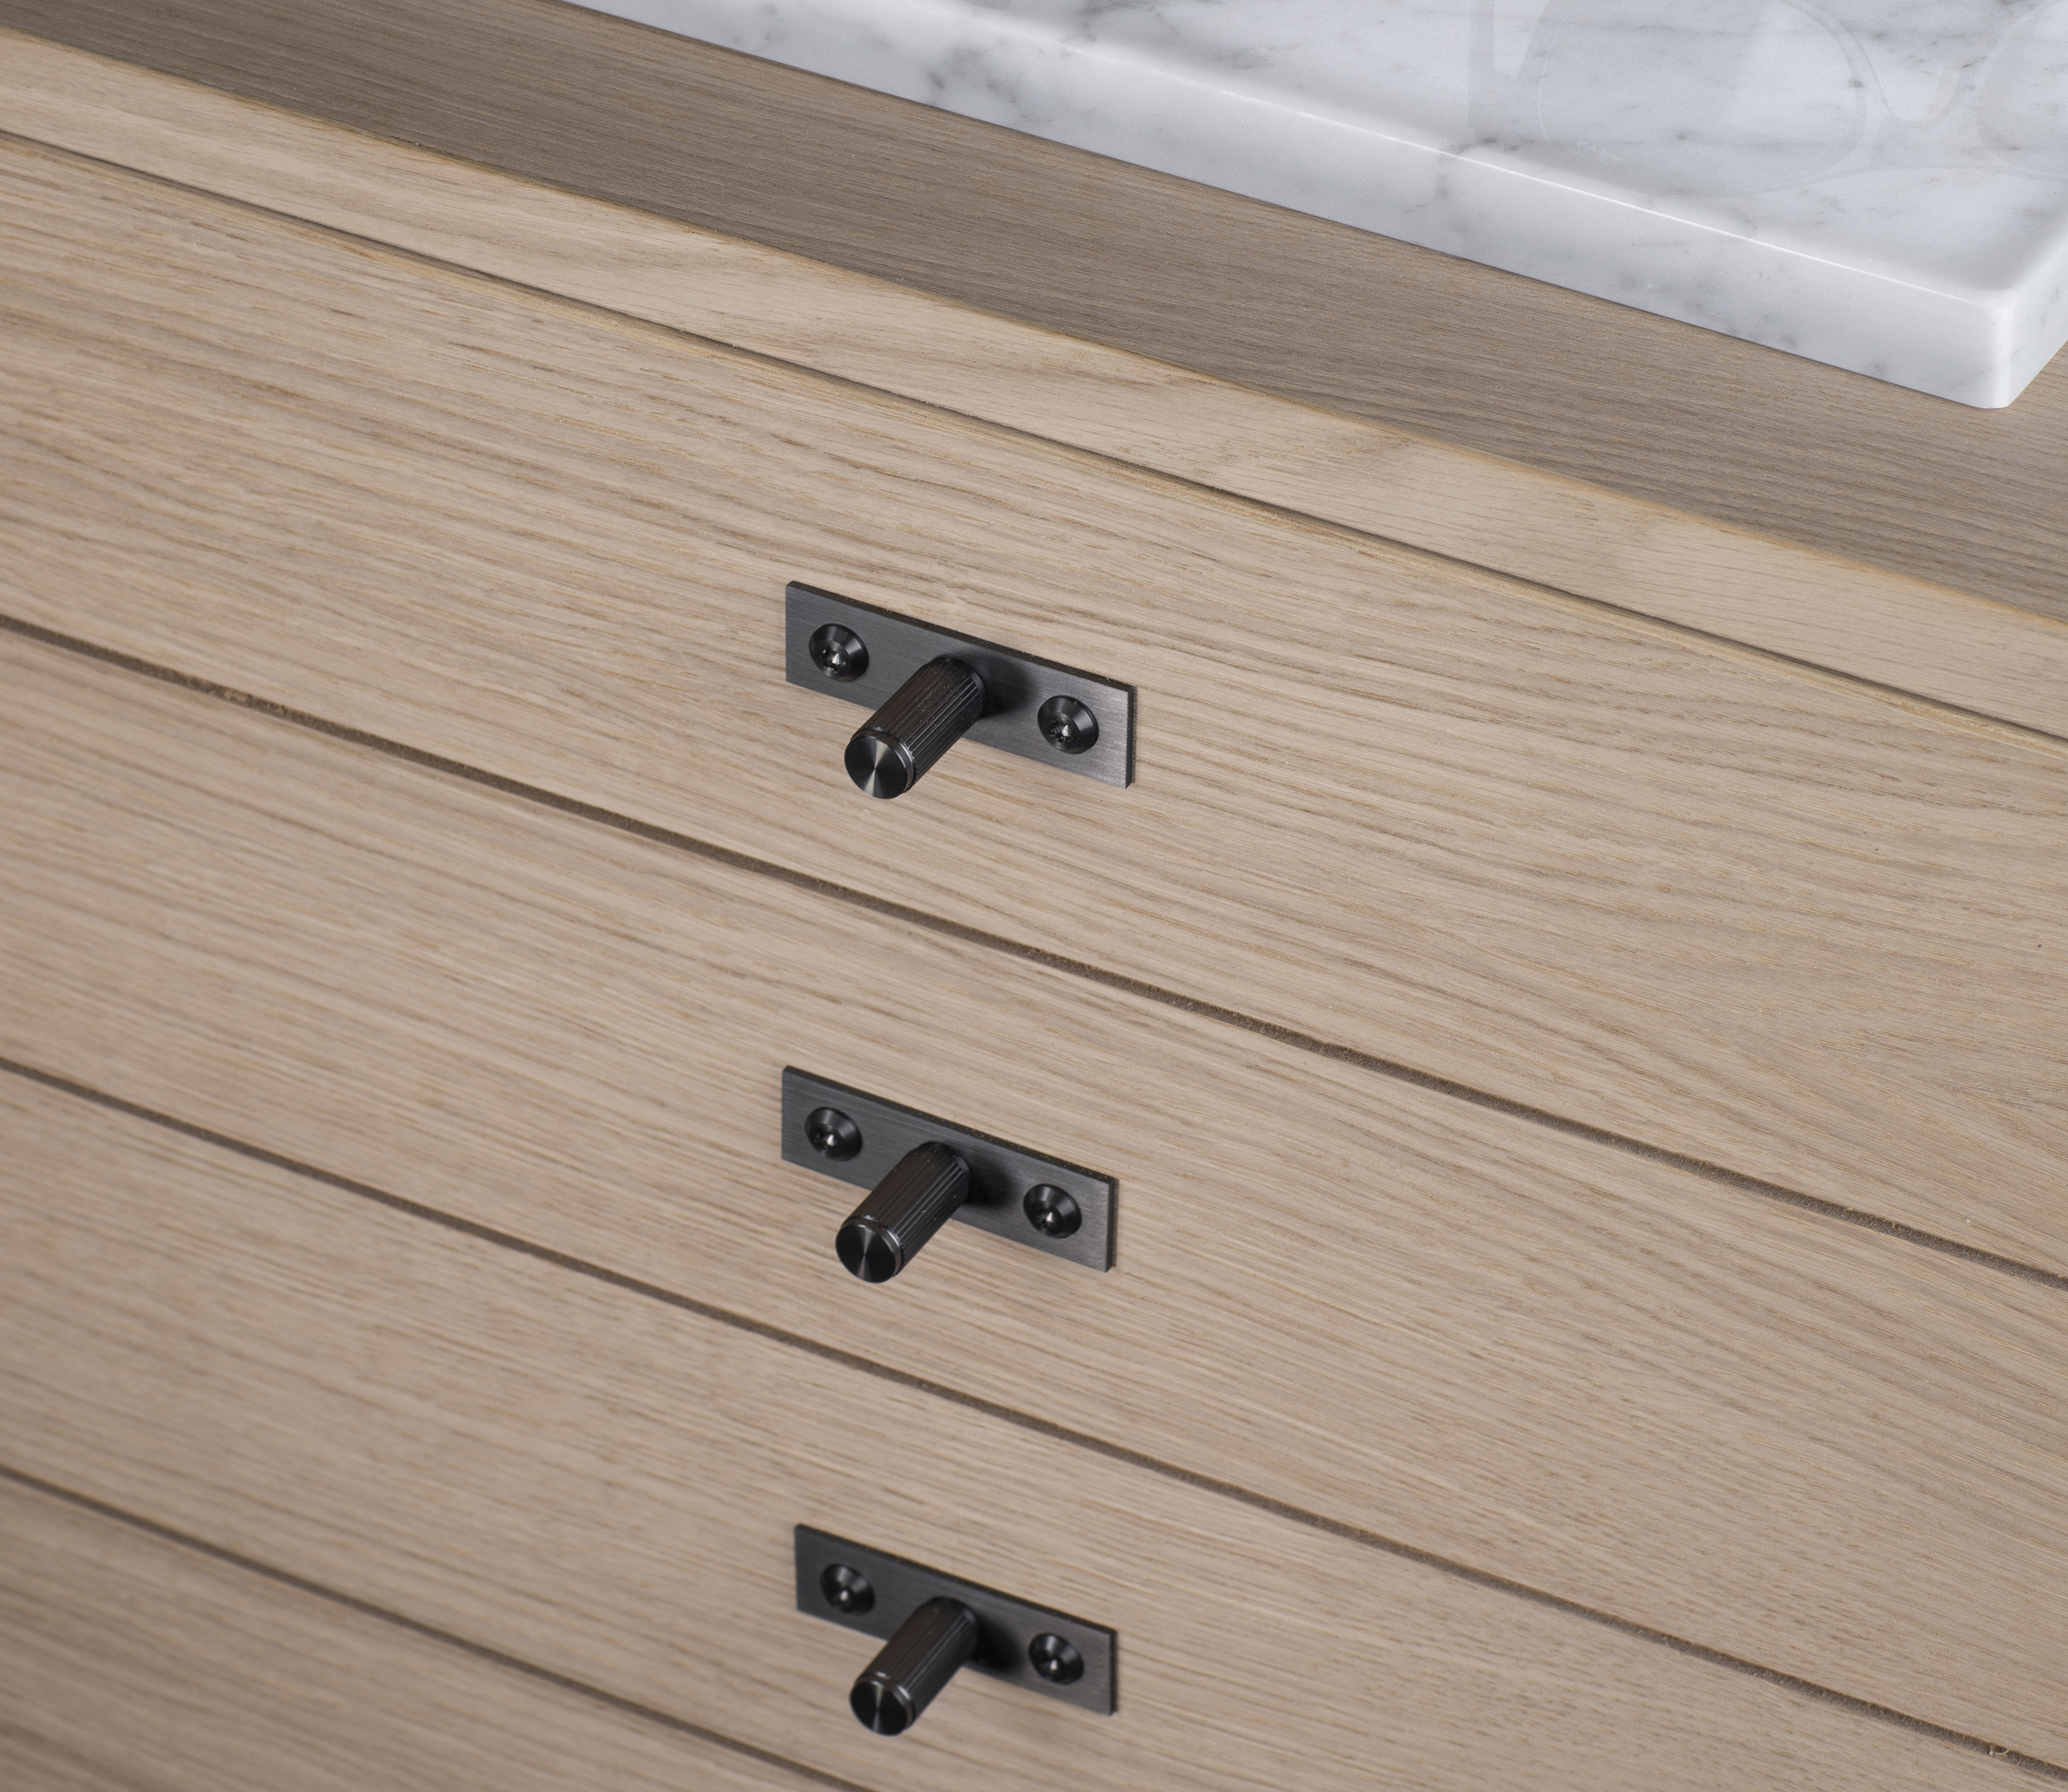 The collection includes a new small-scale design style with a linear knurl pattern.